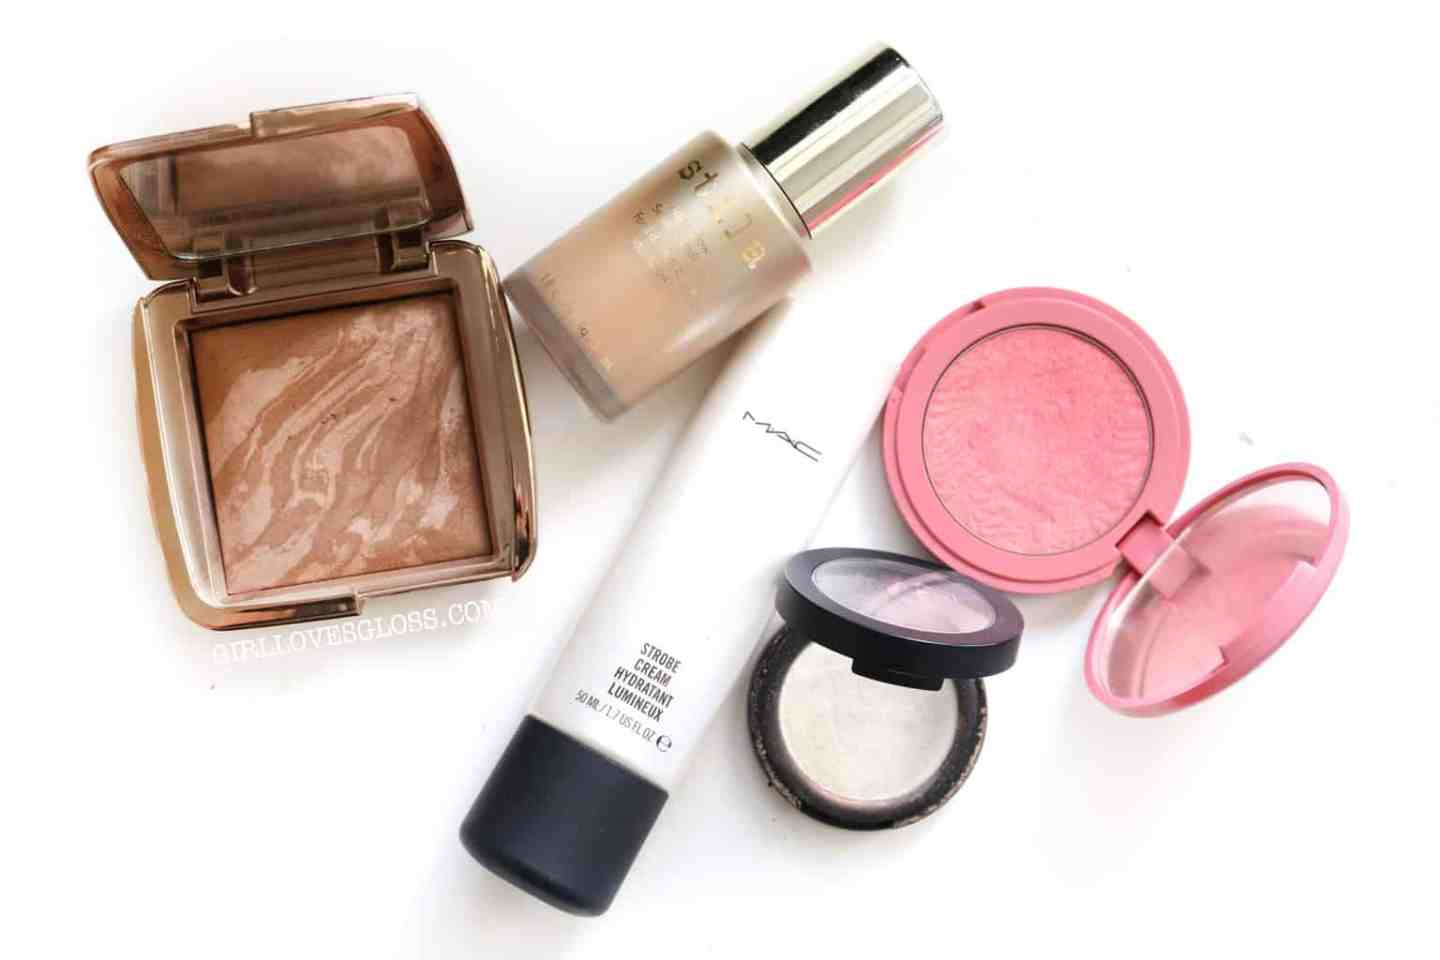 Products to Fake a Pregnancy Glow